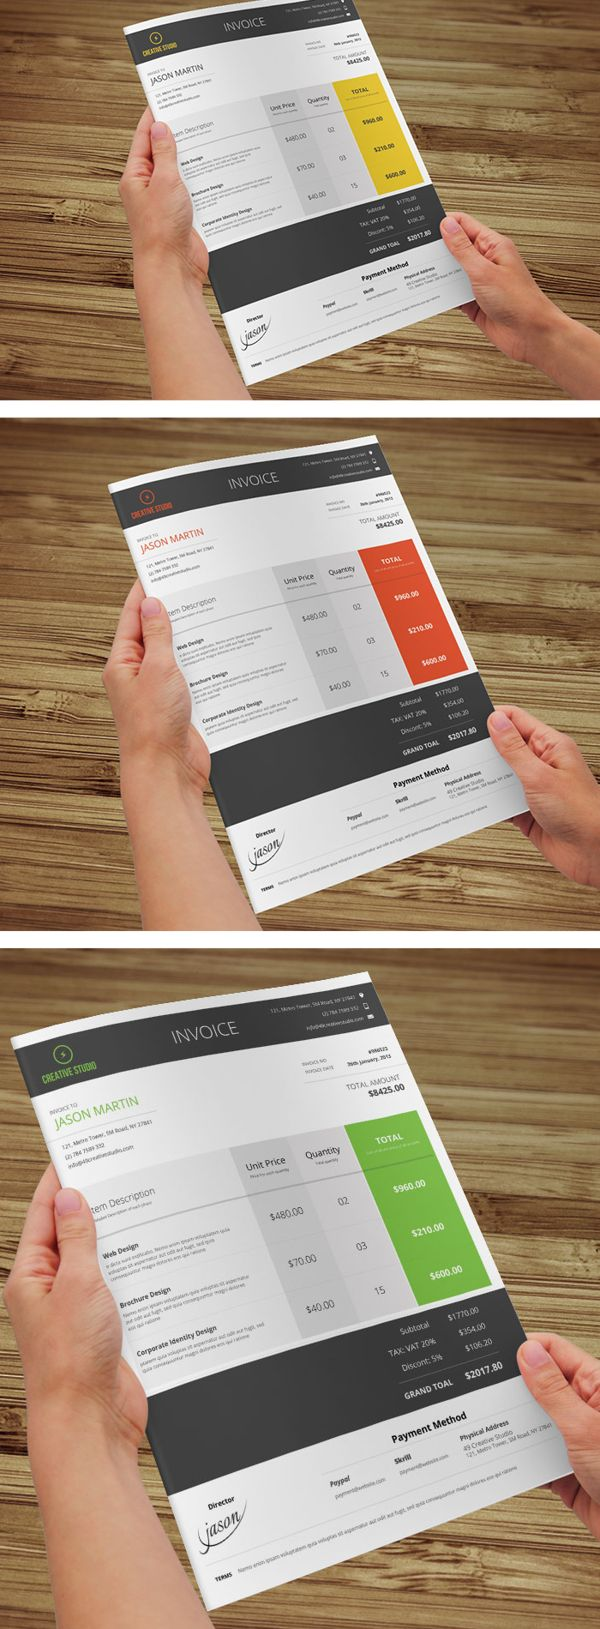 Rent Payment Receipt Format Best  Invoice Sample Ideas On Pinterest  Invoice Example Http  Definition Receipts with Invoice Paid Template Excel  Creative Invoice Template Designs How To Make A Receipt For Payment Excel